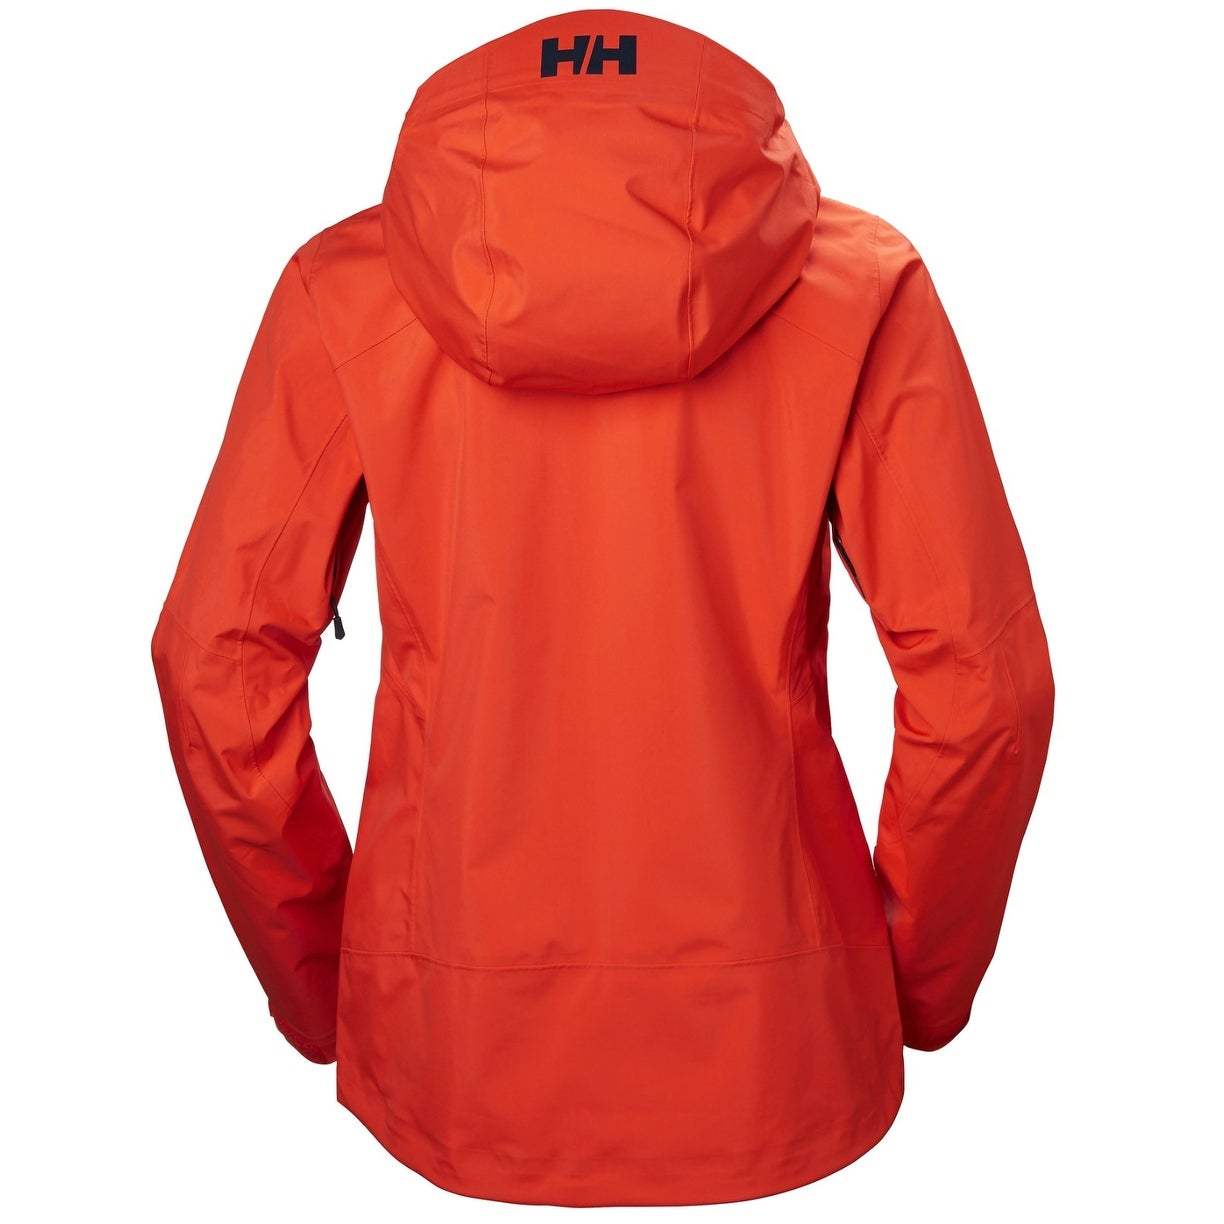 215794c70 Shop Helly Hansen Womens Verglas 3l Shell Jacket - Ships To Canada -  Overstock - 22301241